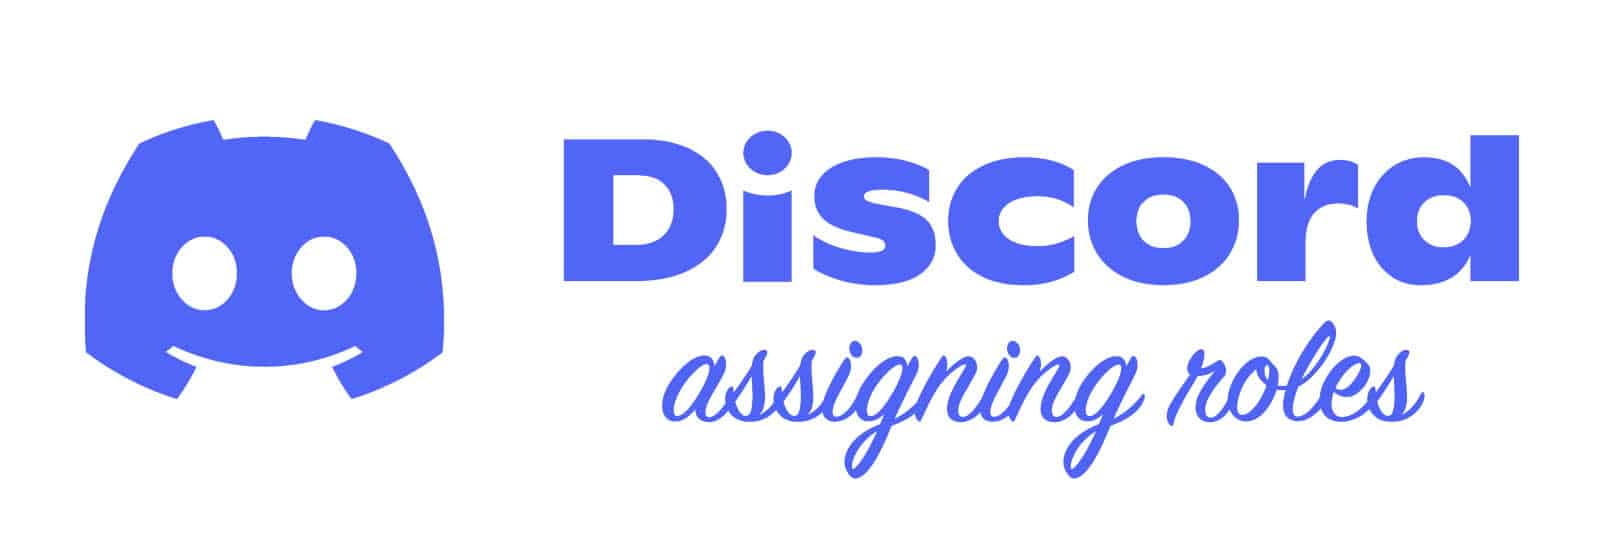 discord-assigning-roles